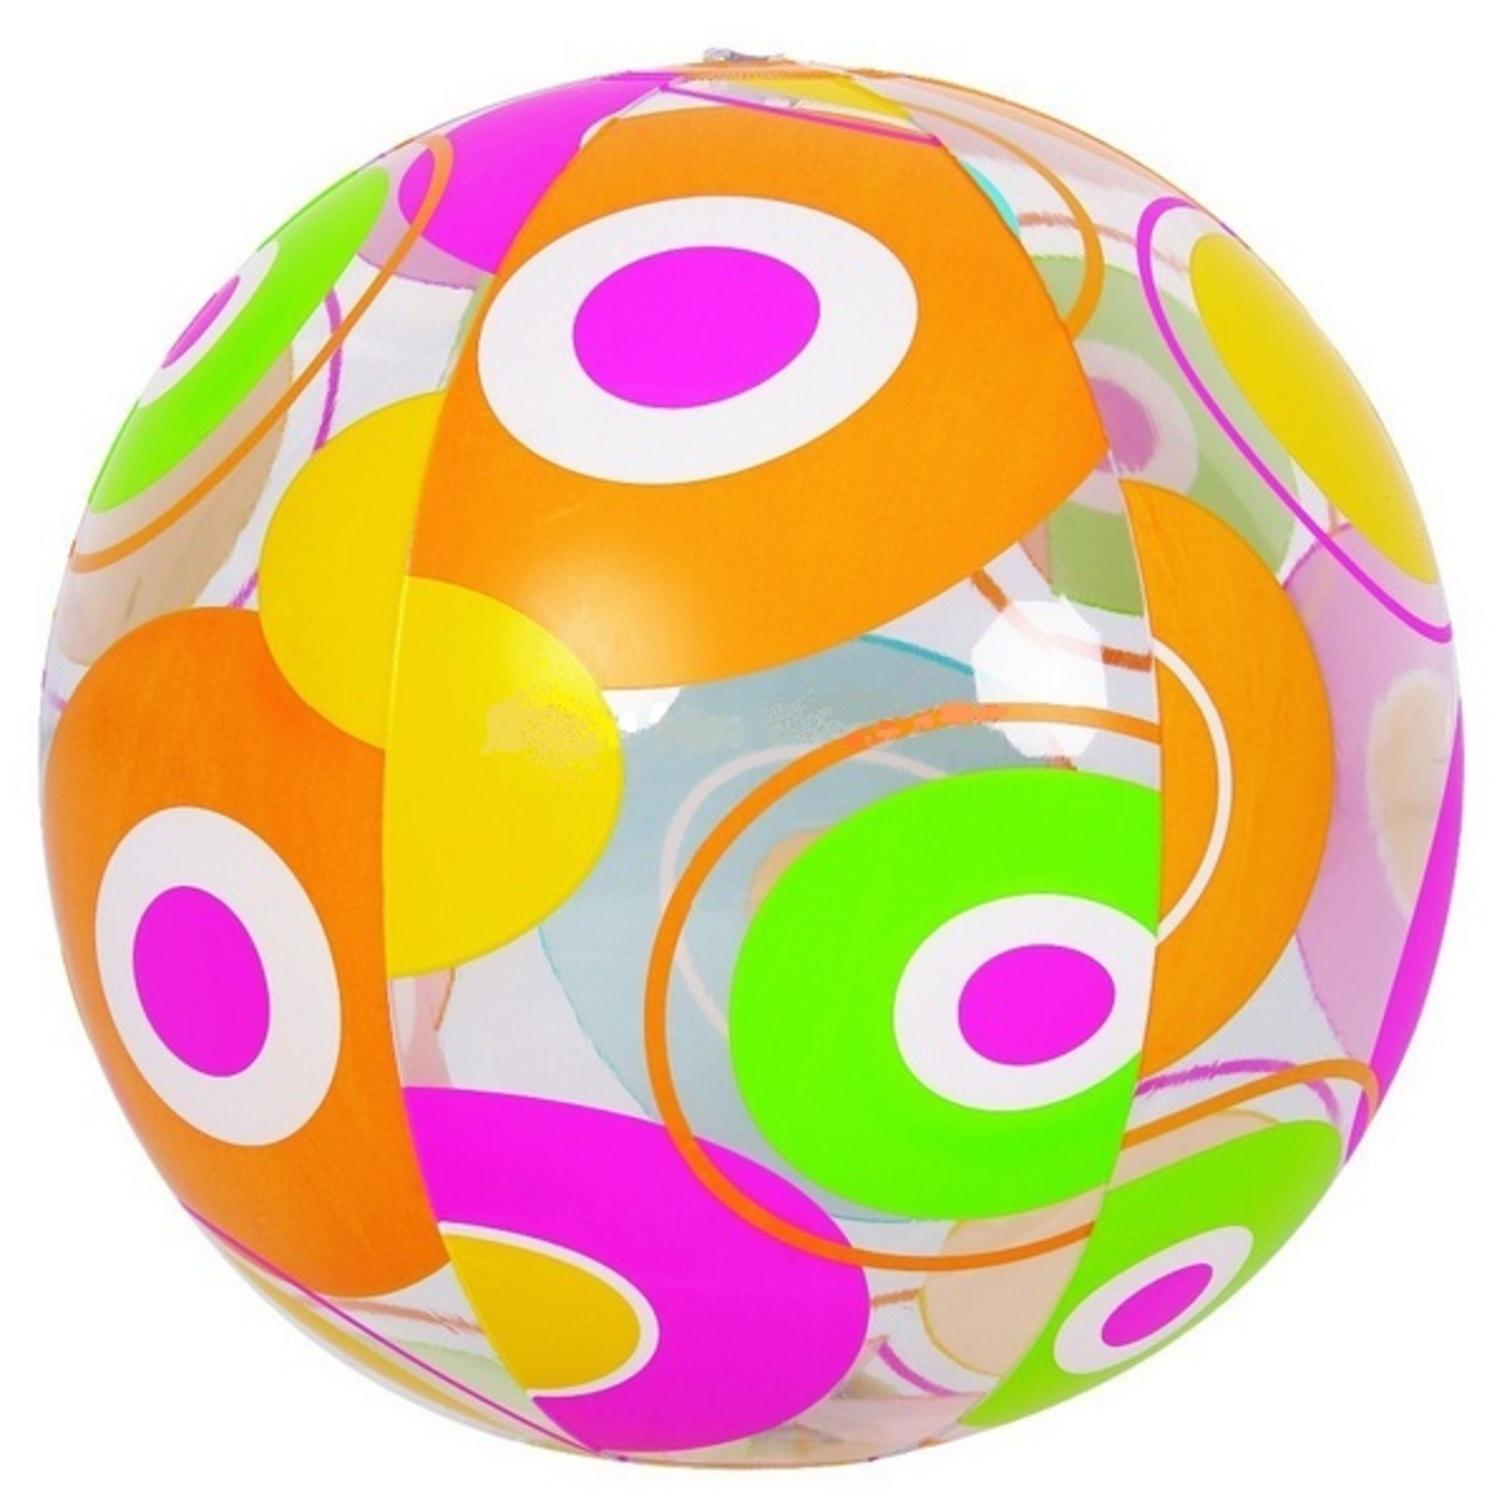 "20"" Colorful 6-Panel Circle Print Inflatable Beach Ball Swimming Pool Toy by Pool Central"